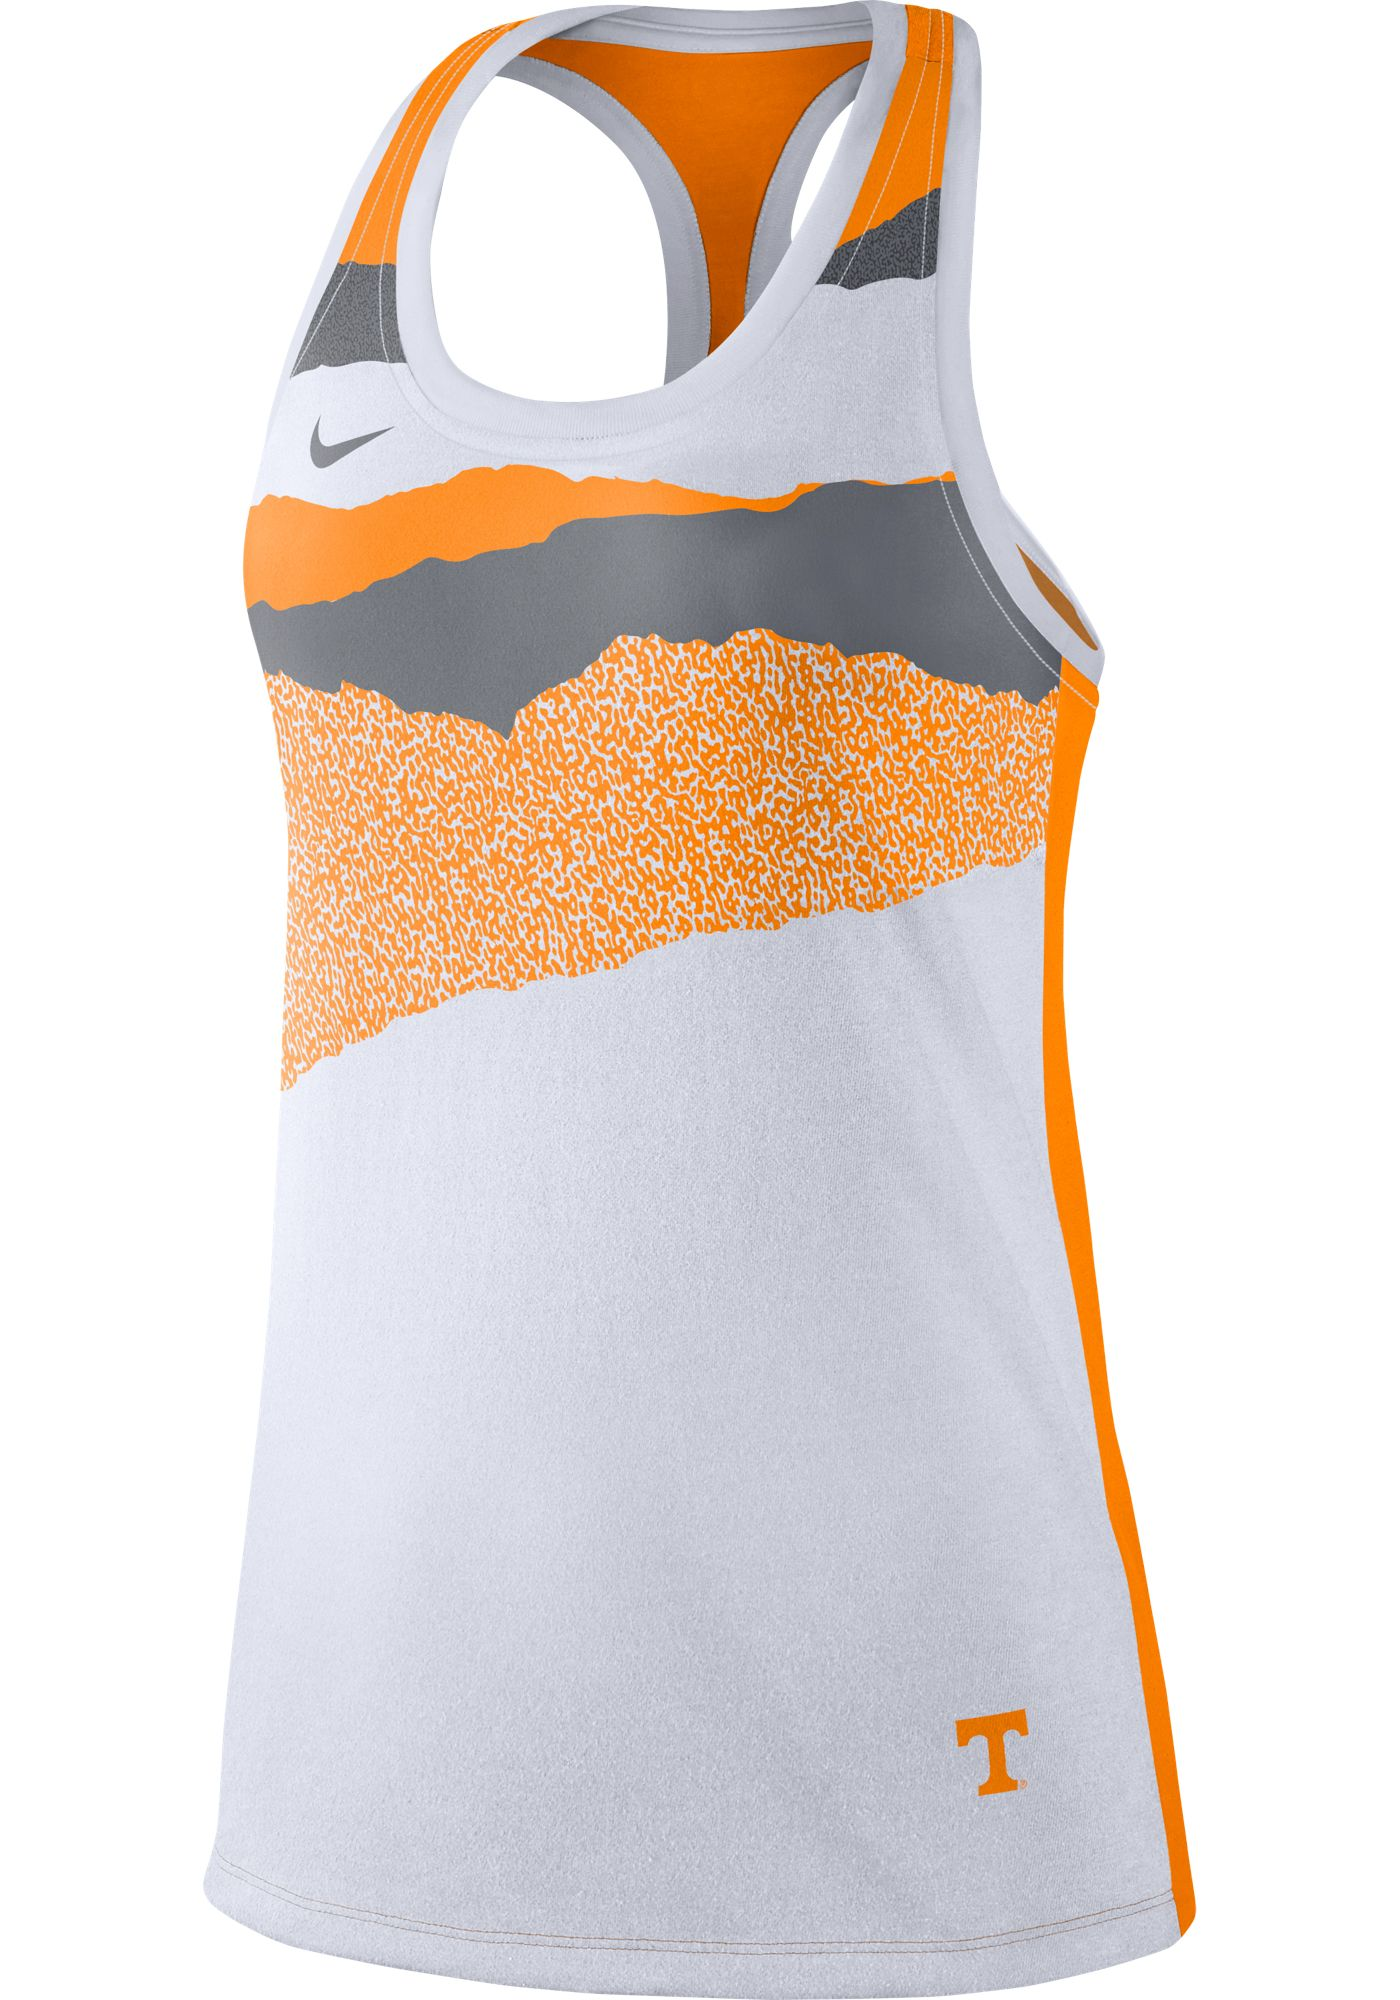 Nike Women's Tennessee Volunteers Racerback Dri-FIT White Tank Top